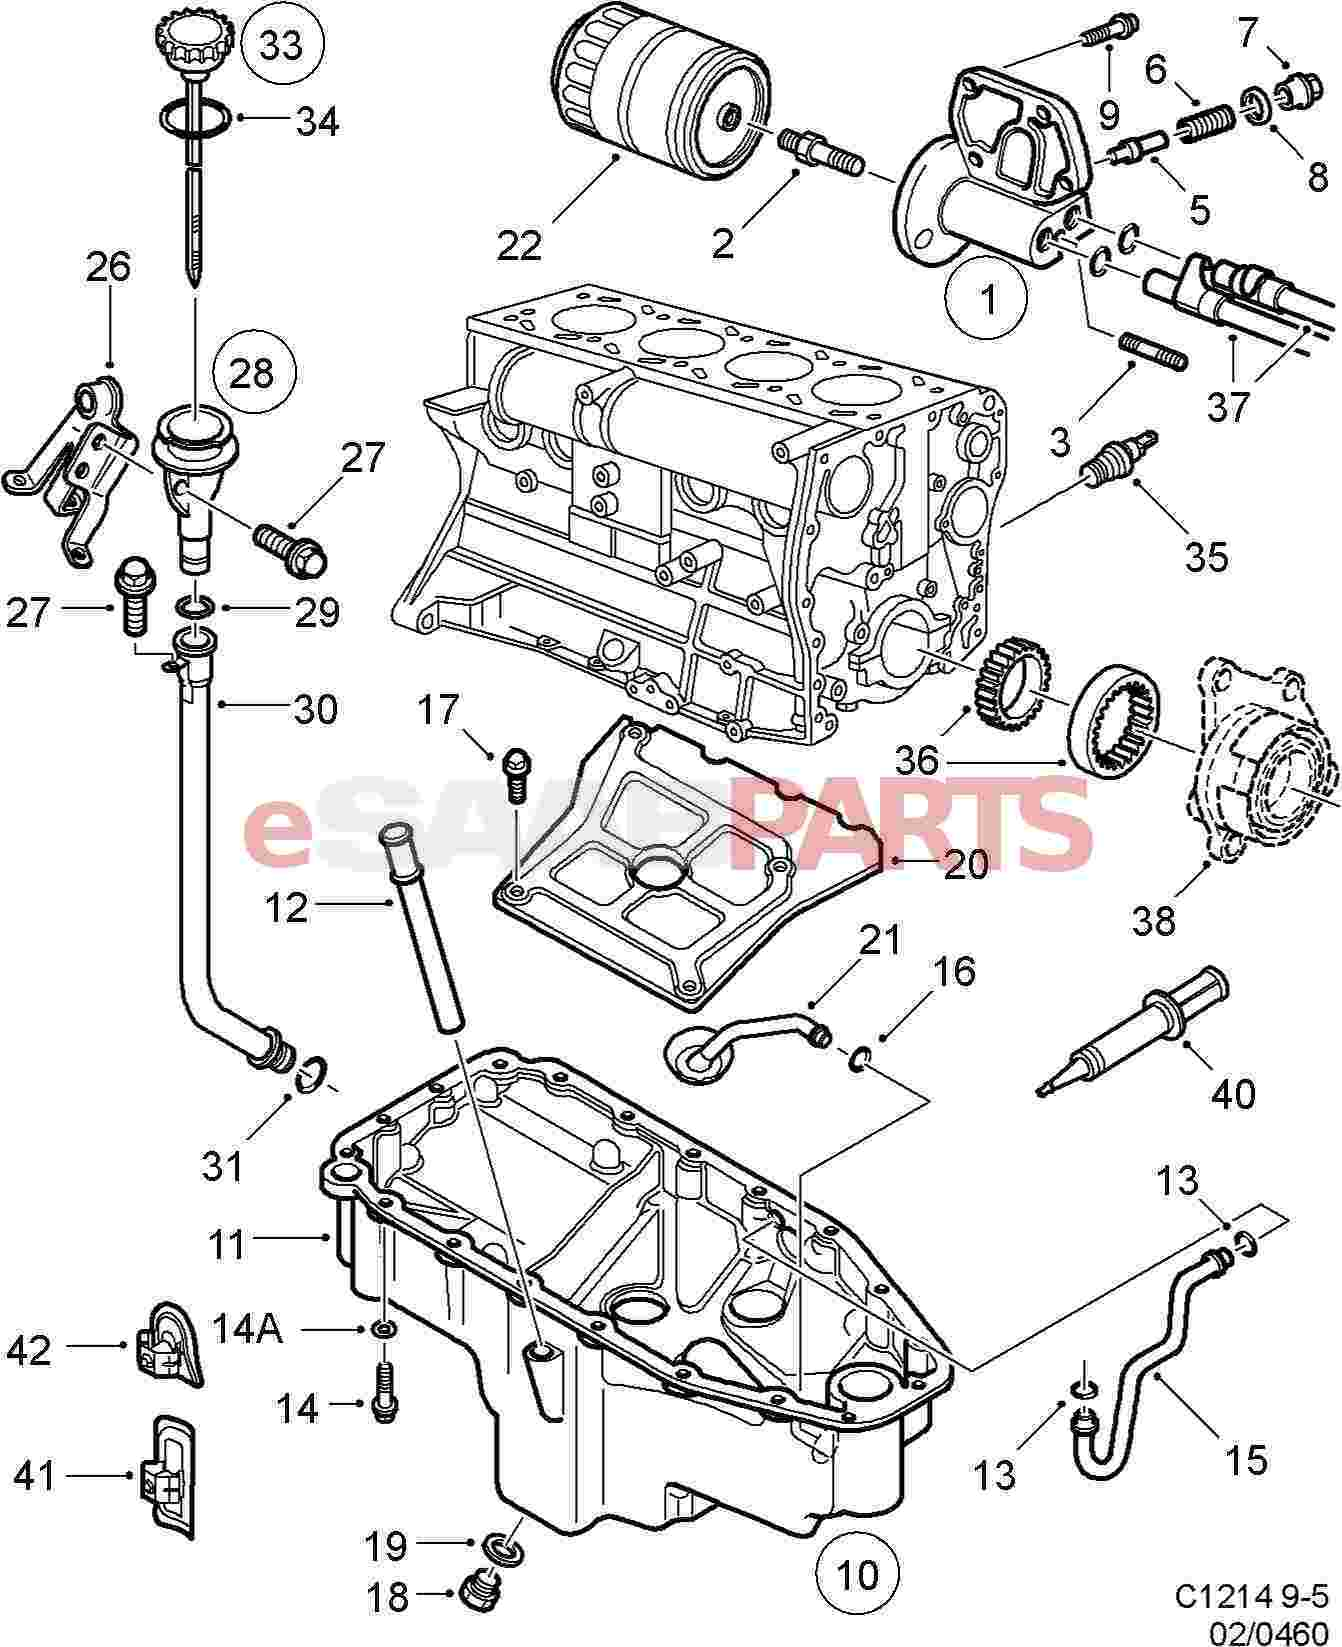 P 0900c152801b352d together with Coolant Temperature Sensor On Nissan Altima 3 5 Thermostat Location together with Saab 9 5 Engine Diagram 2 Saab 9 5 Engine Diagram 10 Ready Screenshoot But Famreit likewise Ford Escort 2001 Ford Escort Serpentine Belt Replacement 2001 Ford Esco together with Chrysler 300 Fuel Pump Relay Location. on saab 9 3 water pump diagram